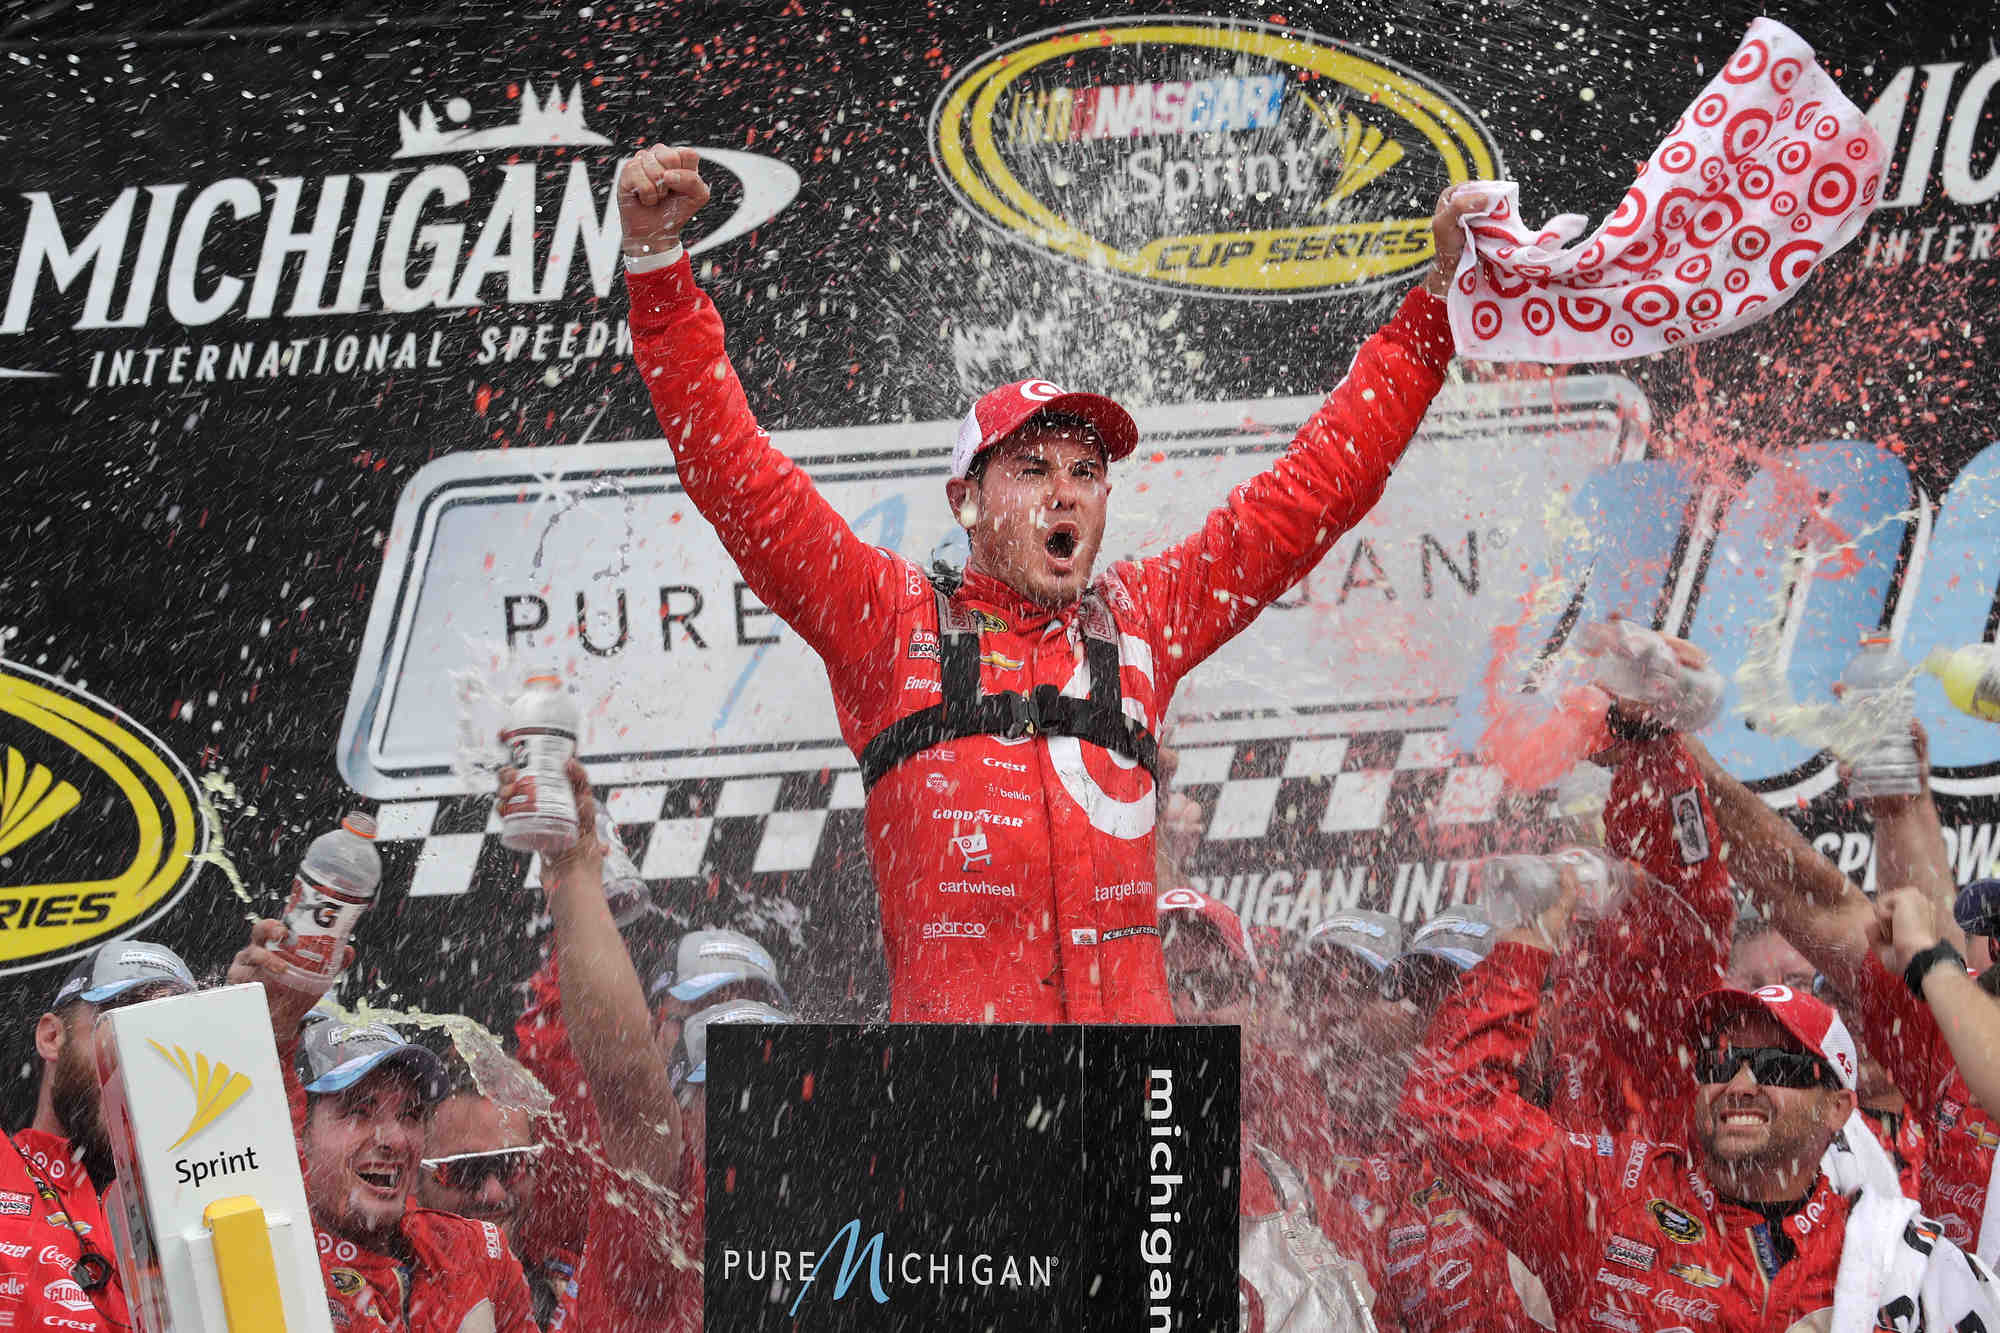 Kyle Larson, driver of the #42 Huggies Chevrolet SS, celebrates his win Sunday, August 28, 2016 in the NASCAR Sprint Cup Race at Michigan International Speedway in Brooklyn, Michigan. This was Larson's 1st career Sprint Cup Series win and the first win, after 99 races, for the Chip Ganassi Racing team. Chase Elliott, driver of the #24 NAPA Auto Parts Chevrolet SS finished second. (Photo by Harold Hinson for Chevy Racing)